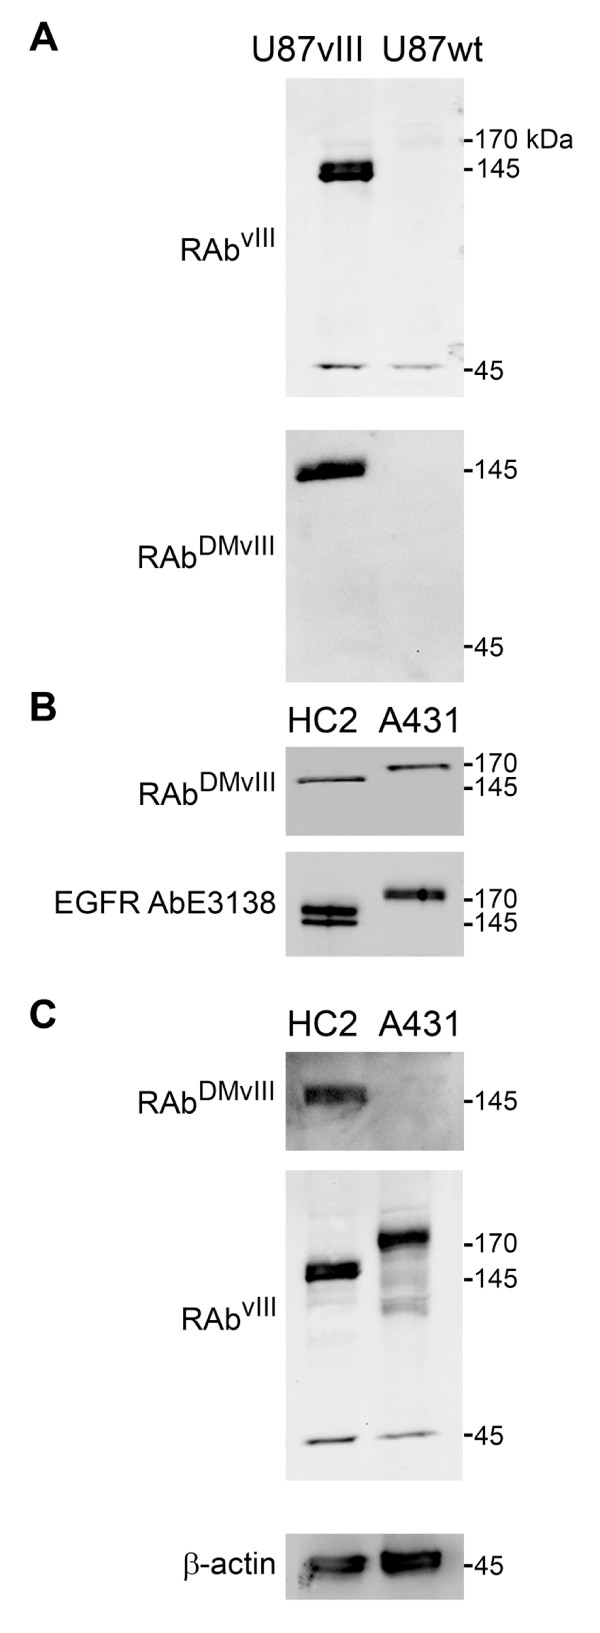 Western Blot analysis of RAb DMvIII antibody . A) 30 ug of U87vIII and U87 wild type cell lysate loaded under reducing conditions on 4-20% SDS-PAGE. A) RAb vIII recognizes 145 kDa band which corresponds to the EGFRvIII and 45 kDa unspecific protein band. A) RAb DMvIII recognizes only 145 kDa protein band. B) RAb DMvIII recognizes 170 KDa protein band in 30 ug of A431 cell lysate (cells overexpressing EGFR) and 145 kDa band in 30 ug of HC2 cell lysate under reducing conditions. B) EGFR antibody recognizes equal amount of protein in both HC2 and A431 cell lysate under reducing conditions. C) RAb DMvIII under non reducing conditions detect only 145 kDa protein band whereas RAb vIII still recognizes 145 kDa and 170 kDa protein bands in non reducing conditions. C) Actin antibody under reducing condition shows equal amount of protein loaded in the wells.